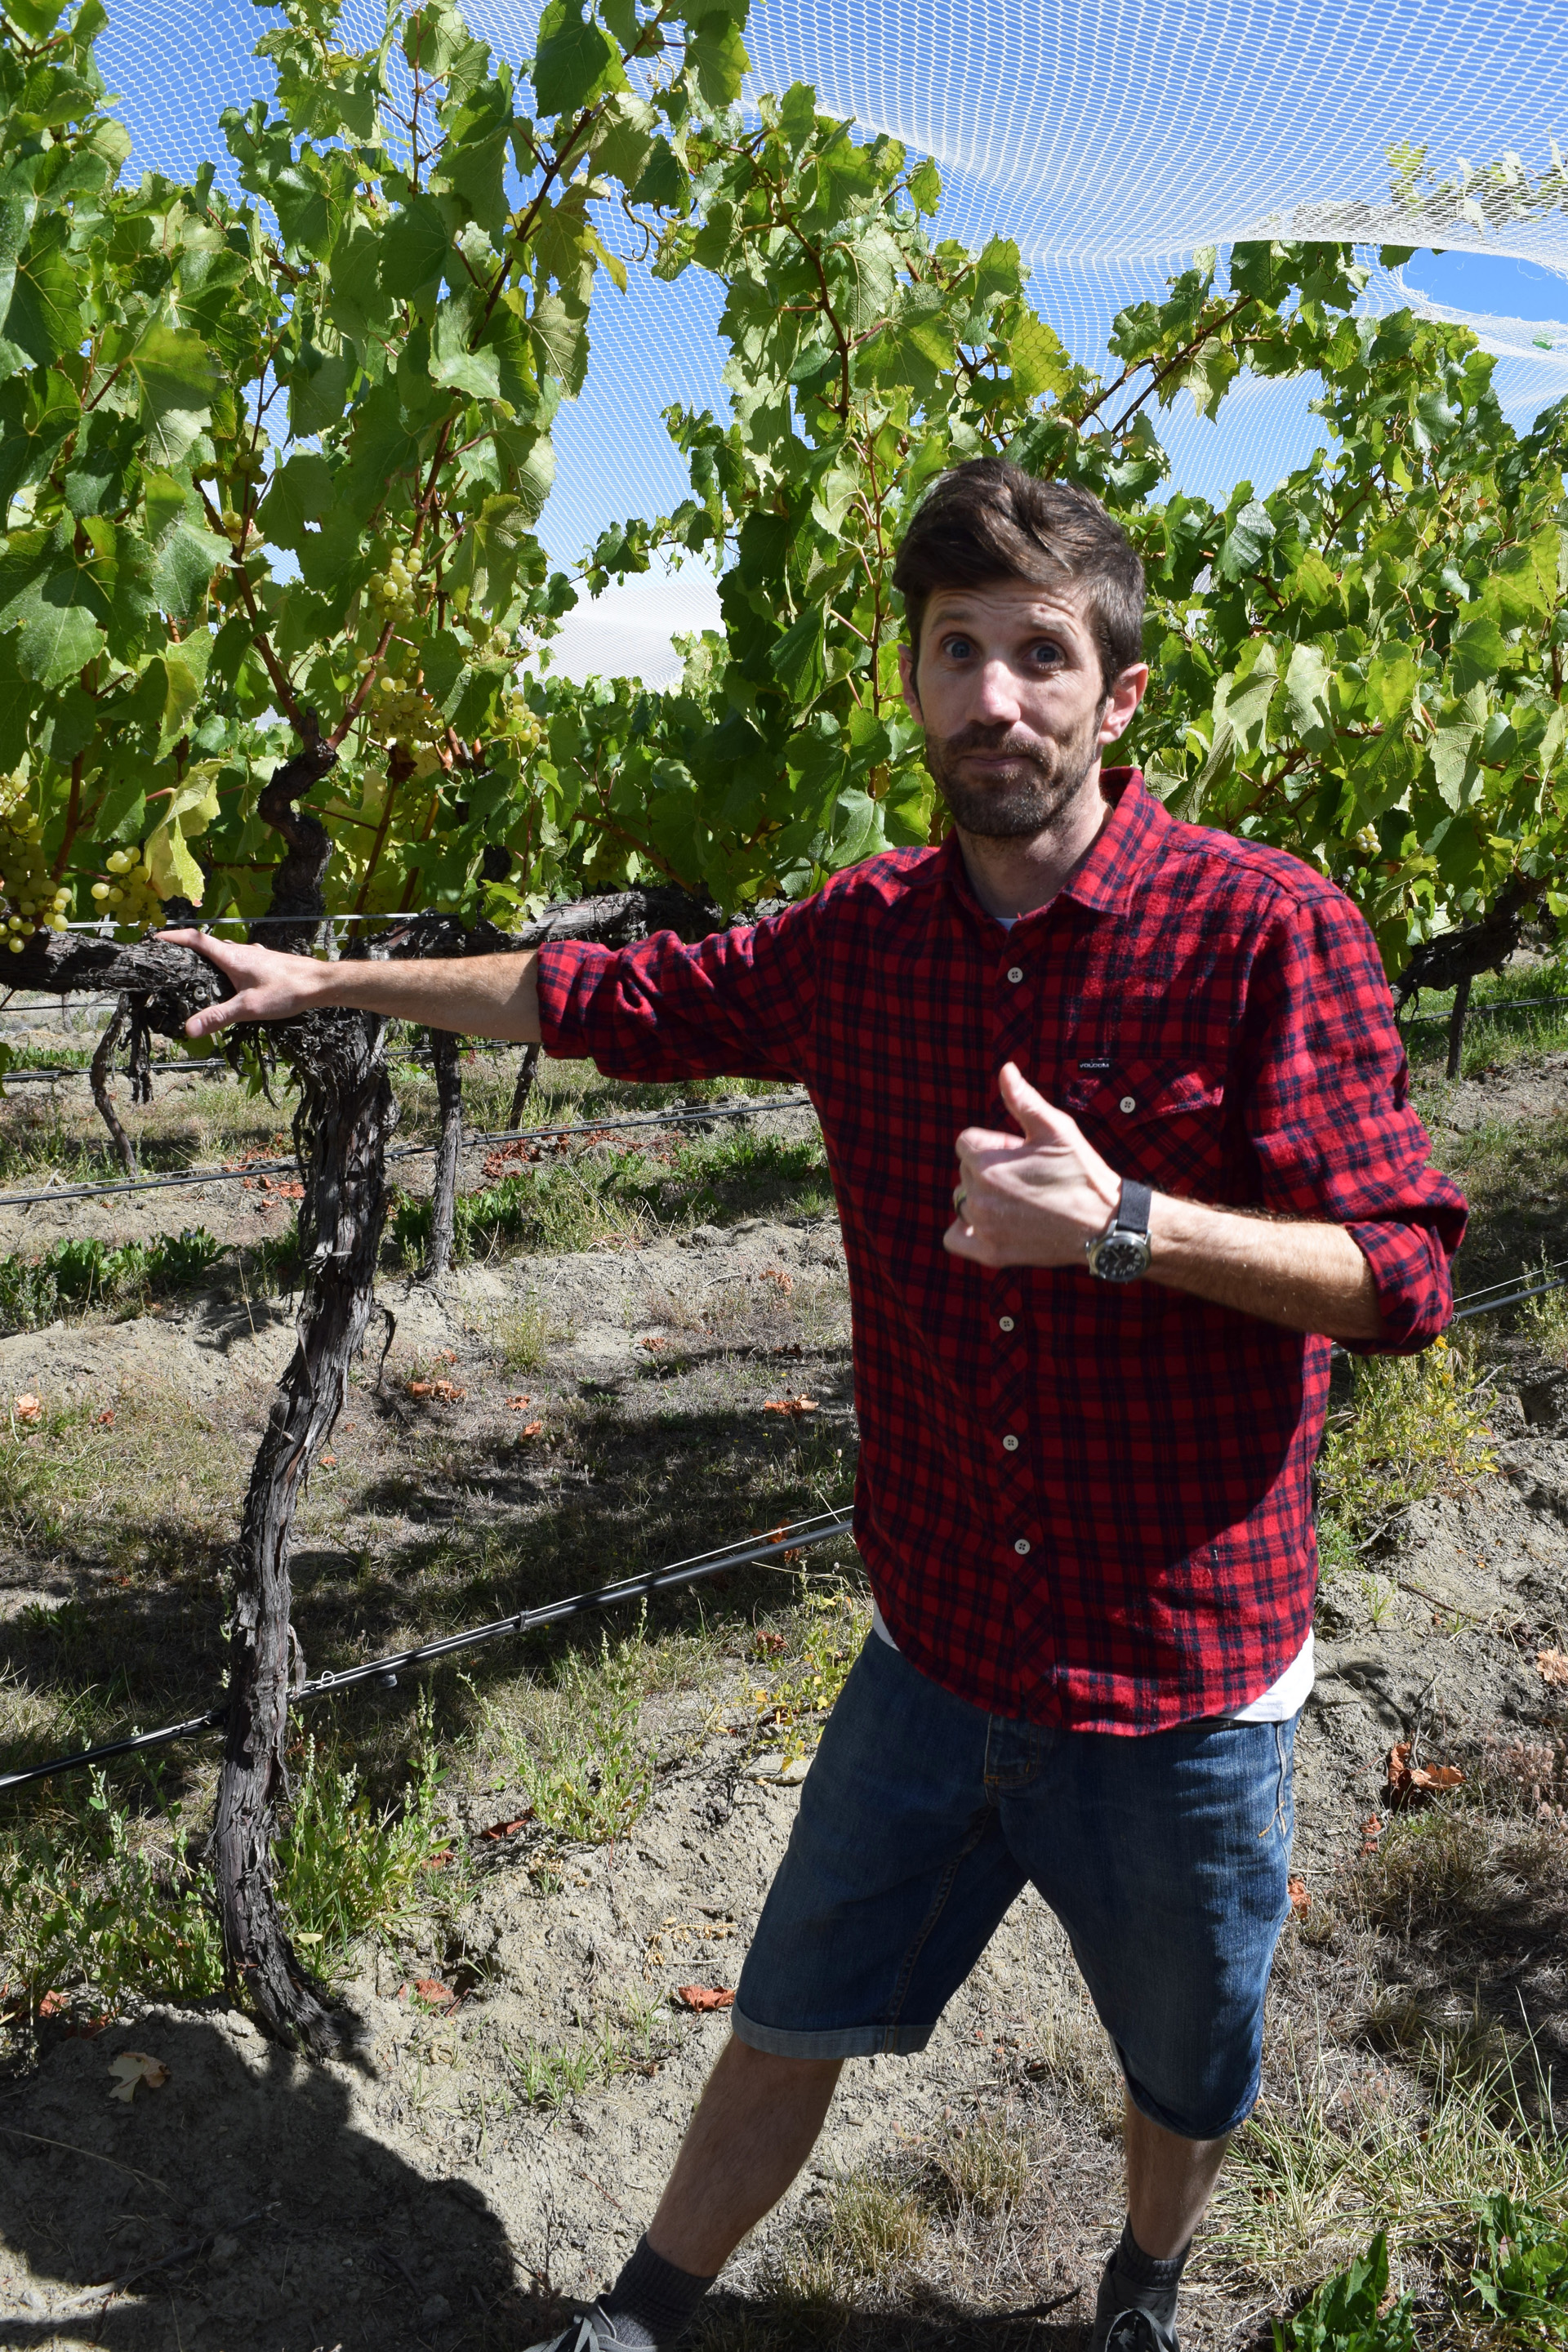 """Young winemaker Francis Hutt explains that the many large producers of his country's sauvignon blanc brands """"pay for a lot of our research and science and help develop markets,"""" benefitting the whole industry."""